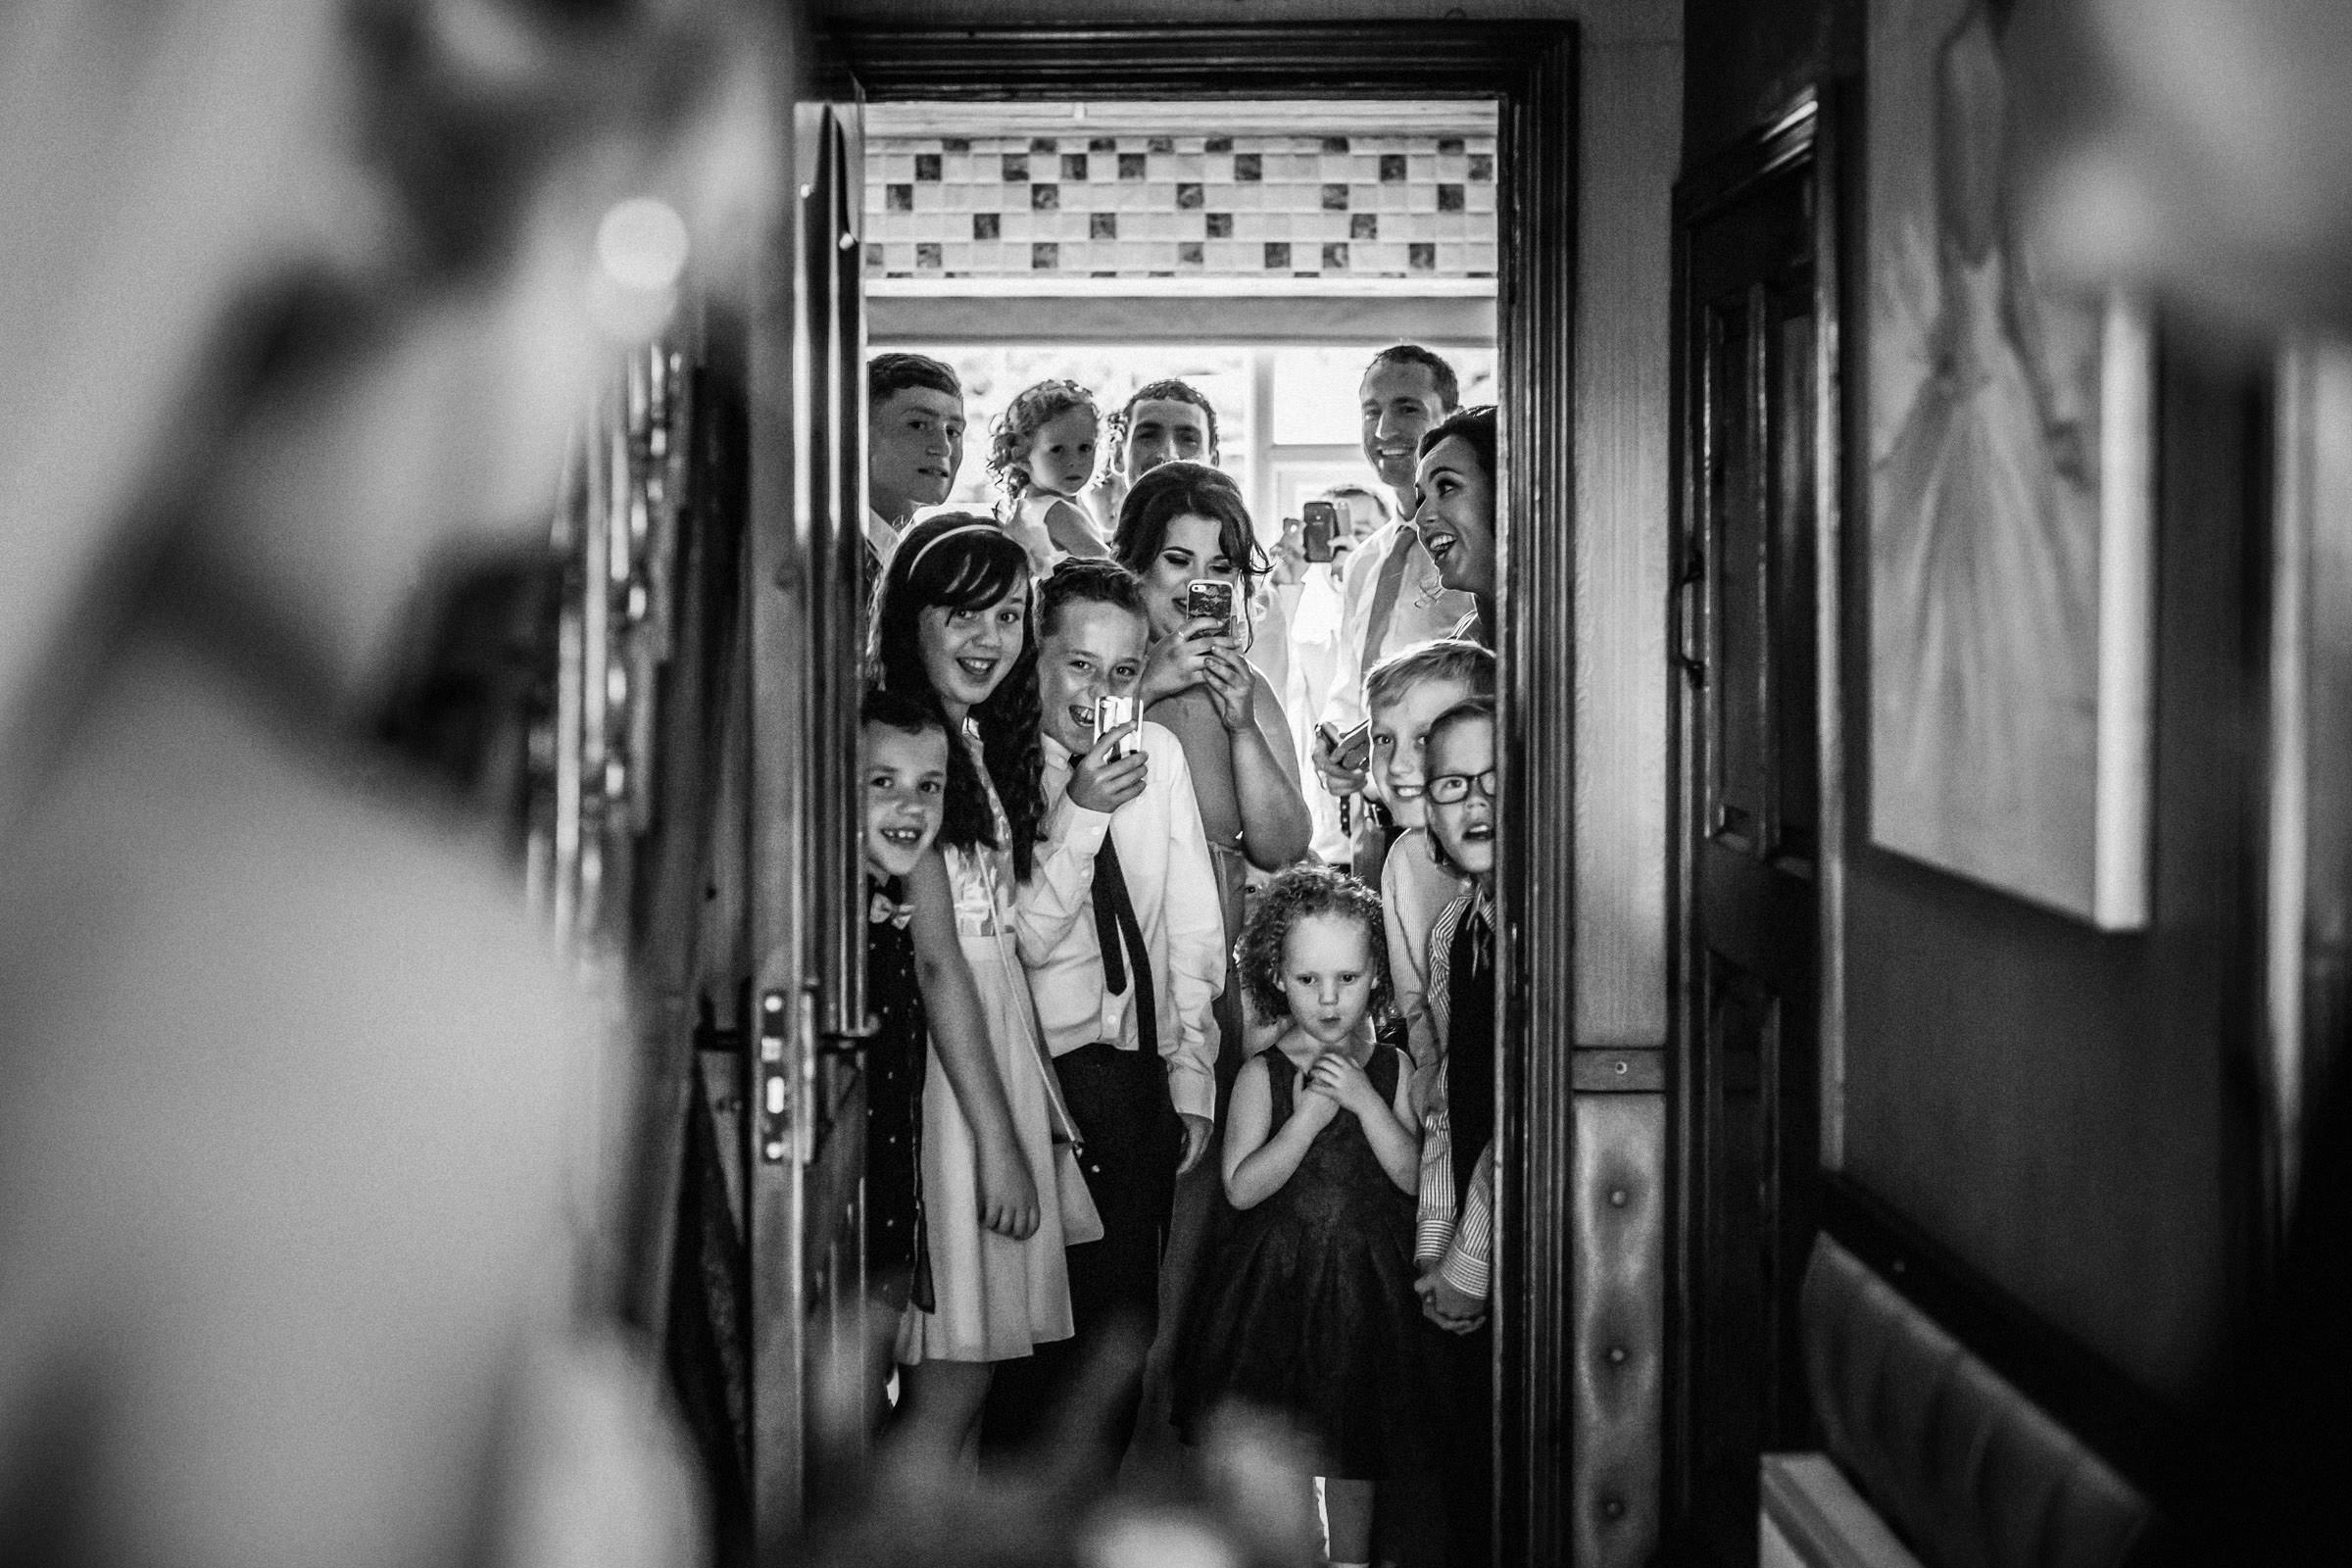 crowd-at-doorway-to-win-first-glimpse-of-bride-lima-conlon-photography